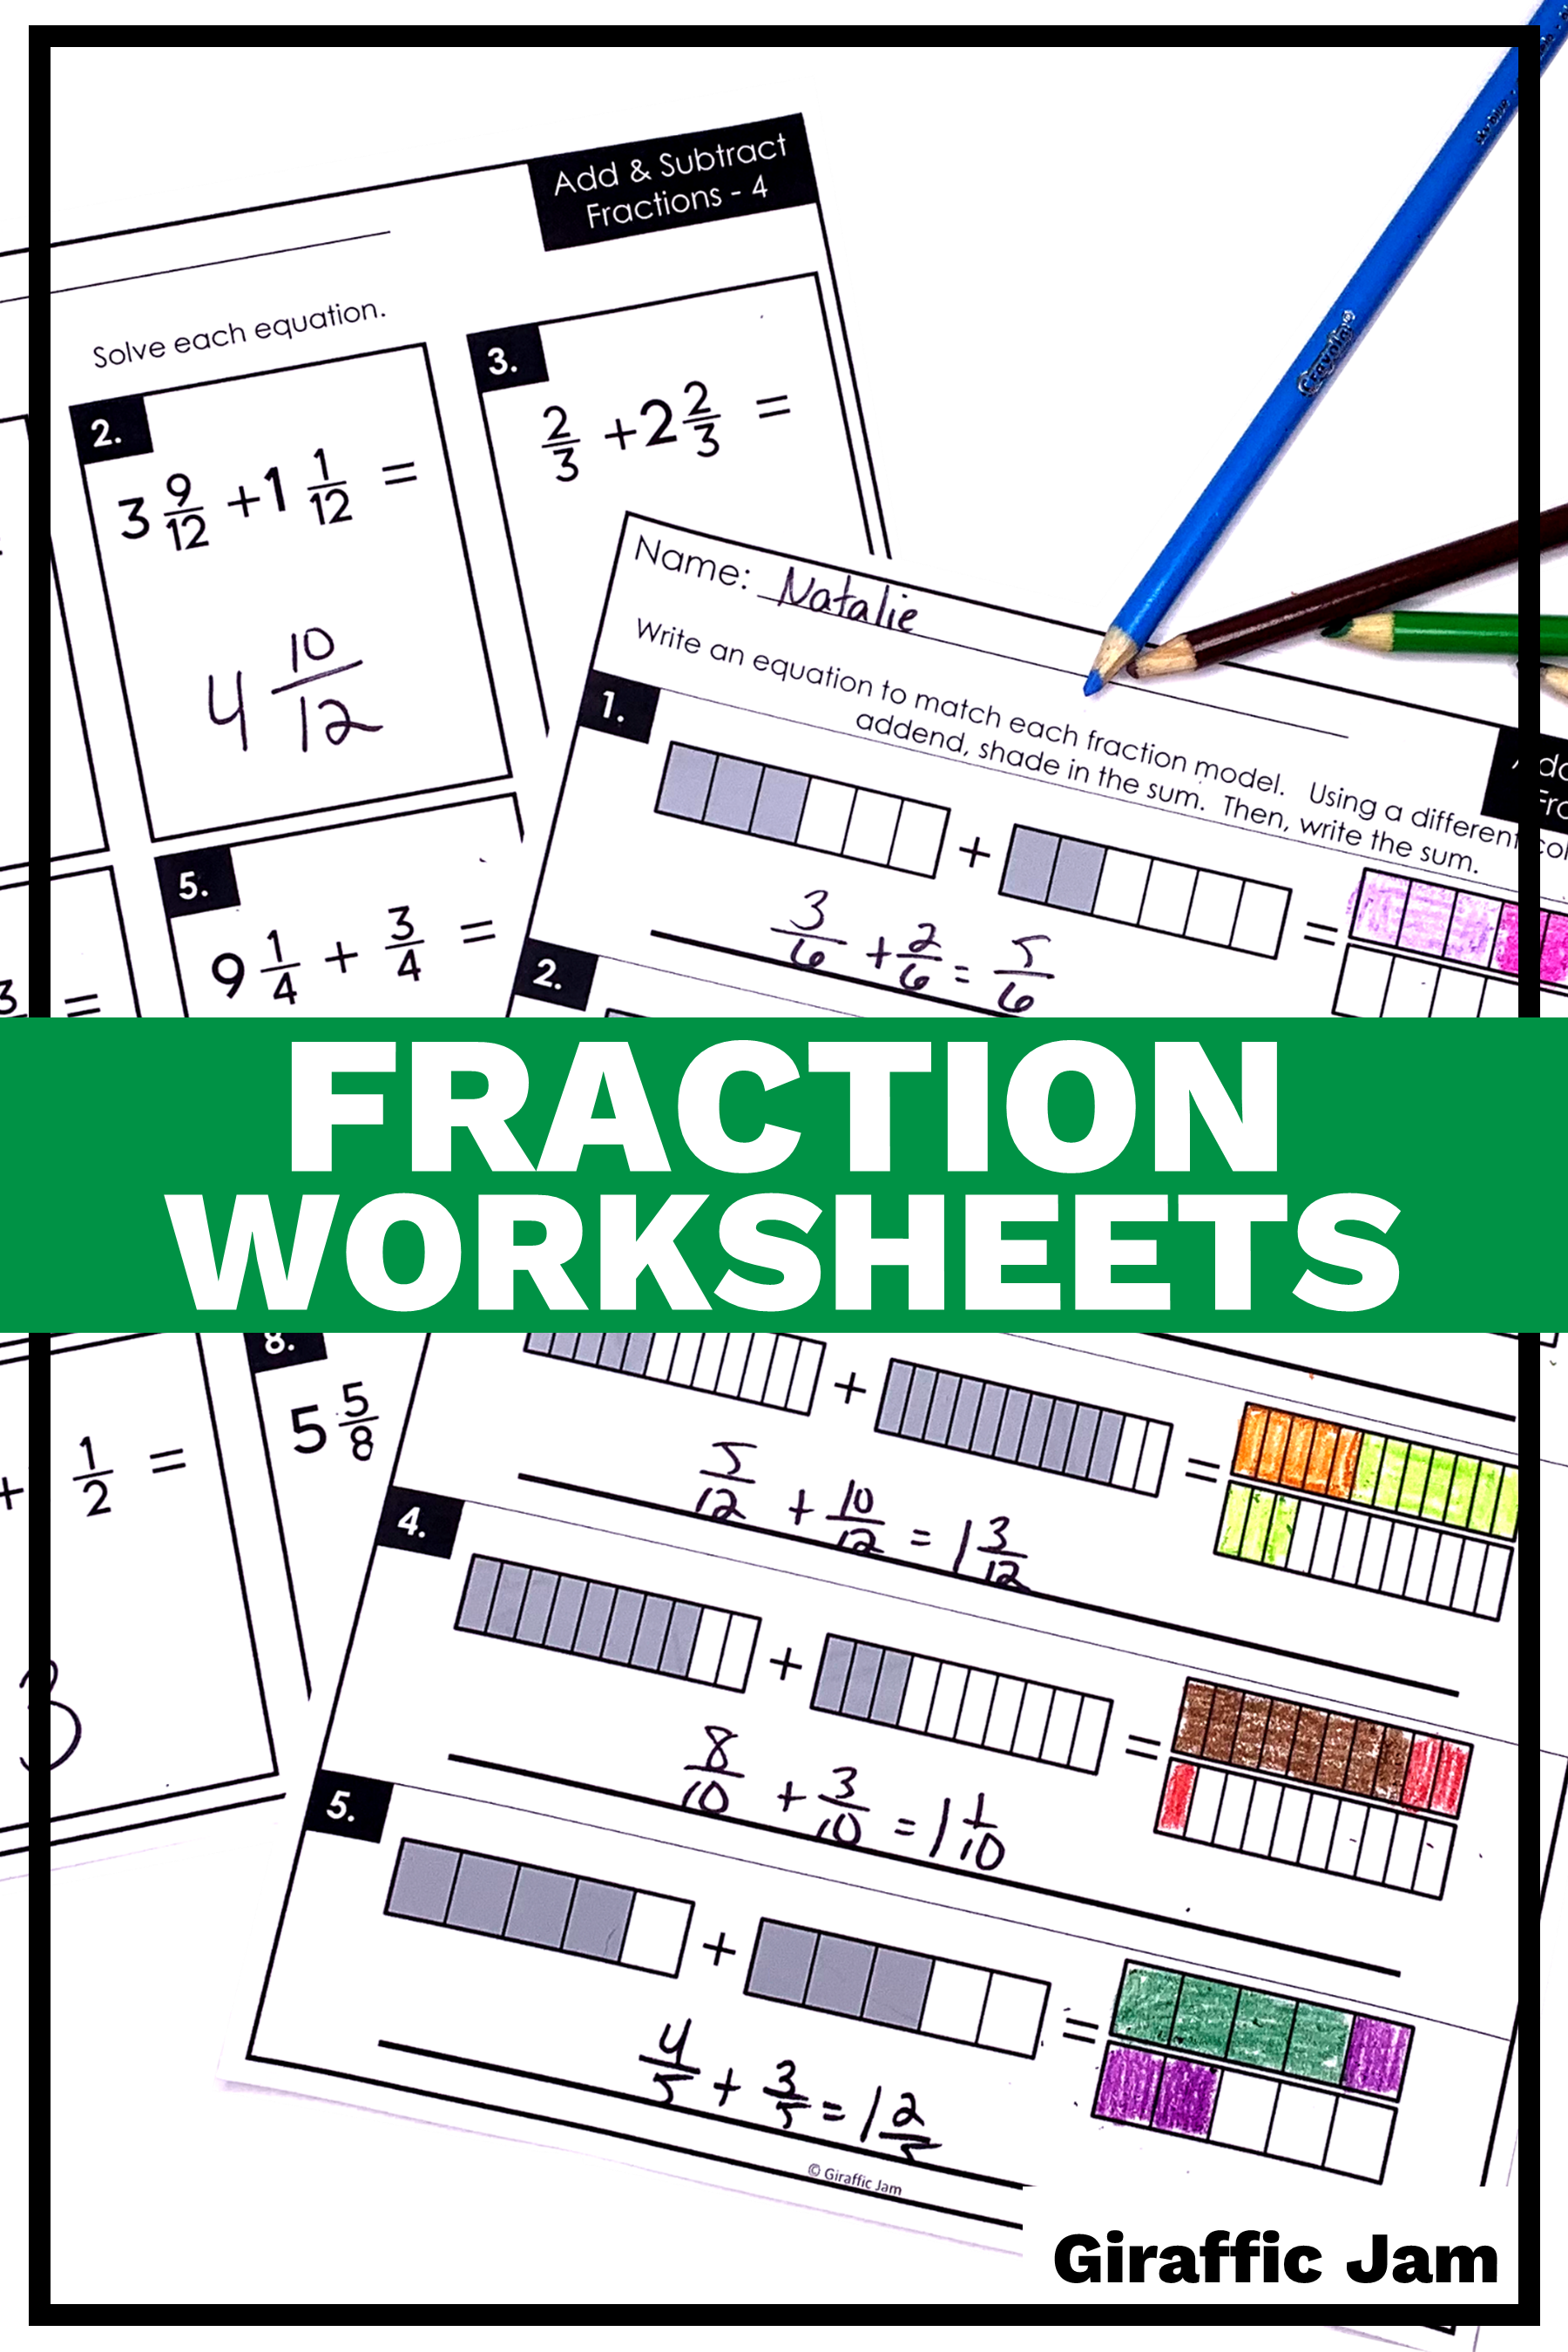 hight resolution of 4th Grade fractions   Adding Fractions   Subtracting Fractions   Fraction  worksheets  …   Adding and subtracting fractions